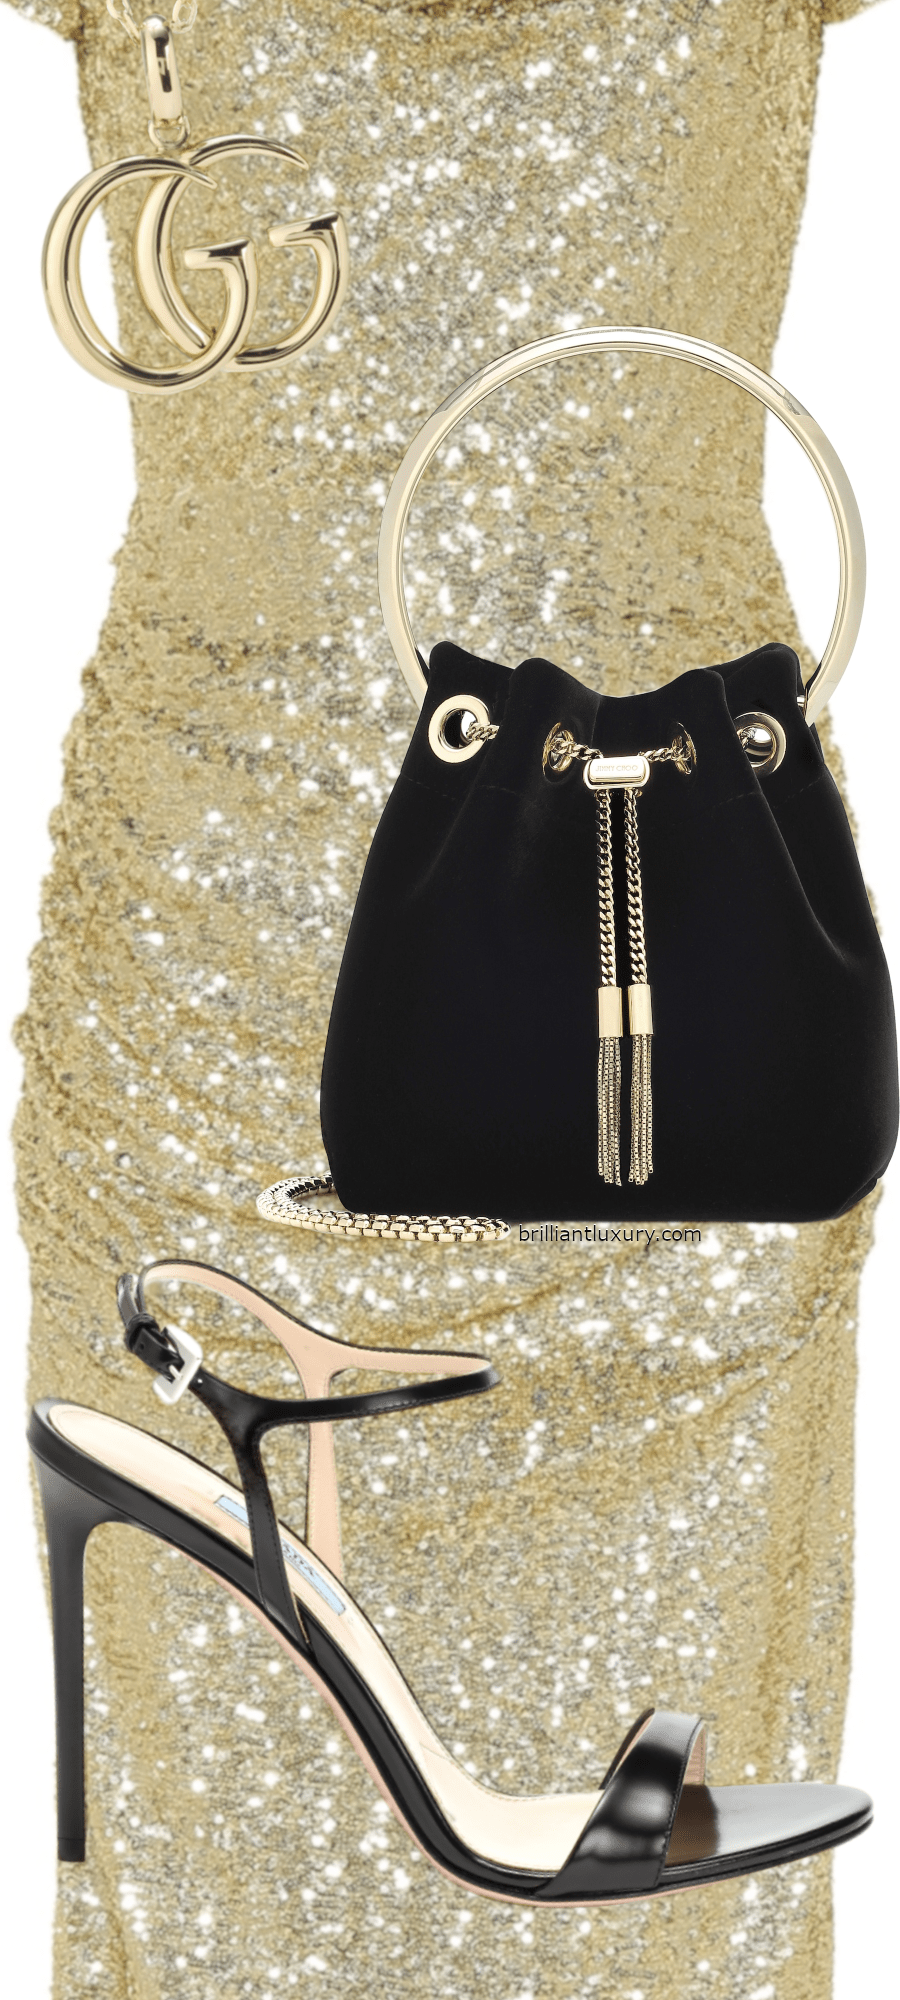 Brilliant Luxury Black & Gold Party Outfits #dolce&gabbana #prada #gucci #jimmychoo #accessories #shoes #bags #jewelry #fashion